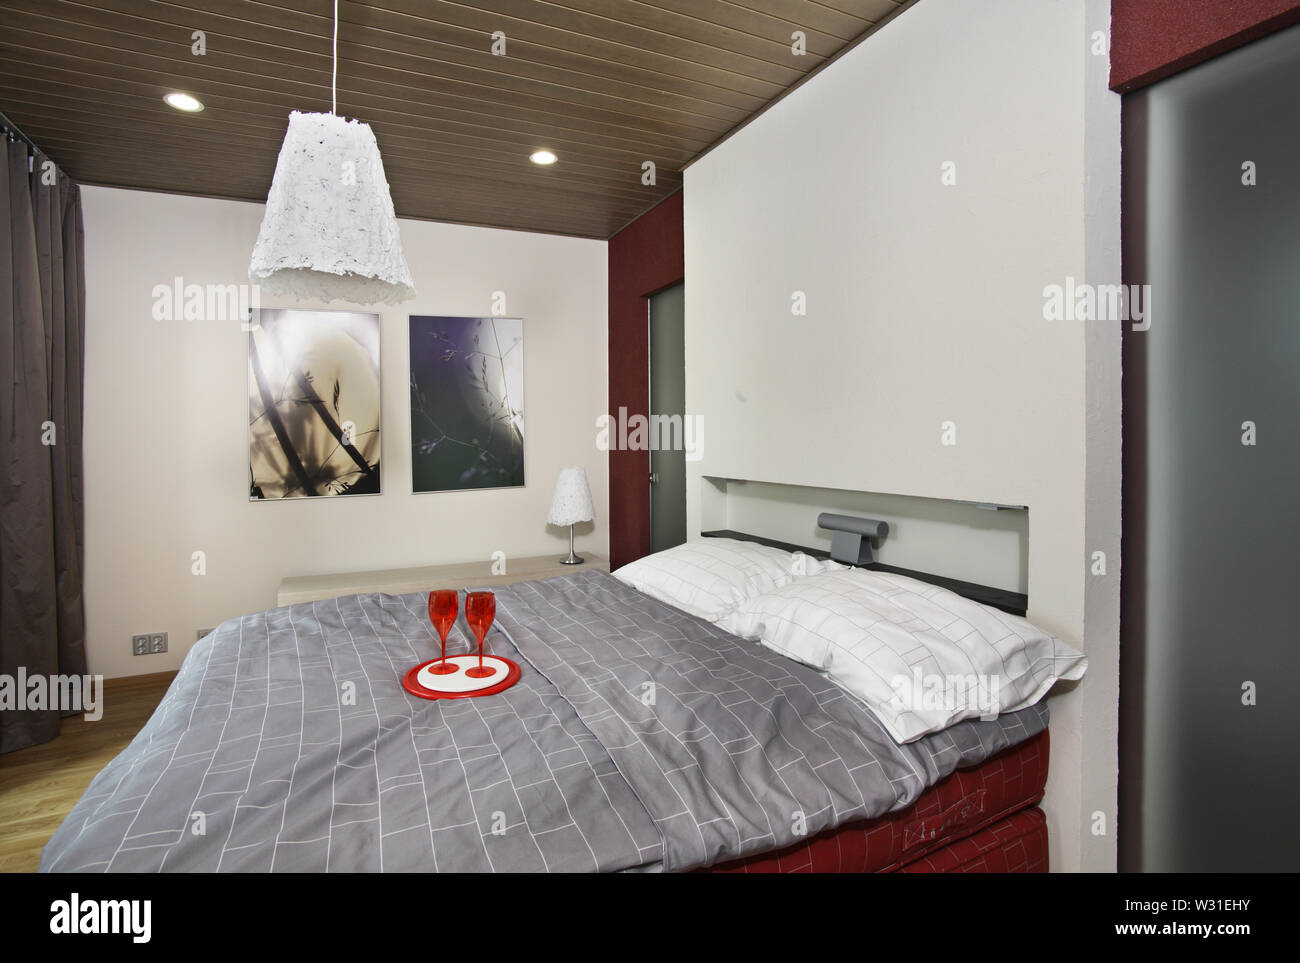 House 18 at exhibition Asuntomessut 2012 in Tampere. Finland - Stock Image